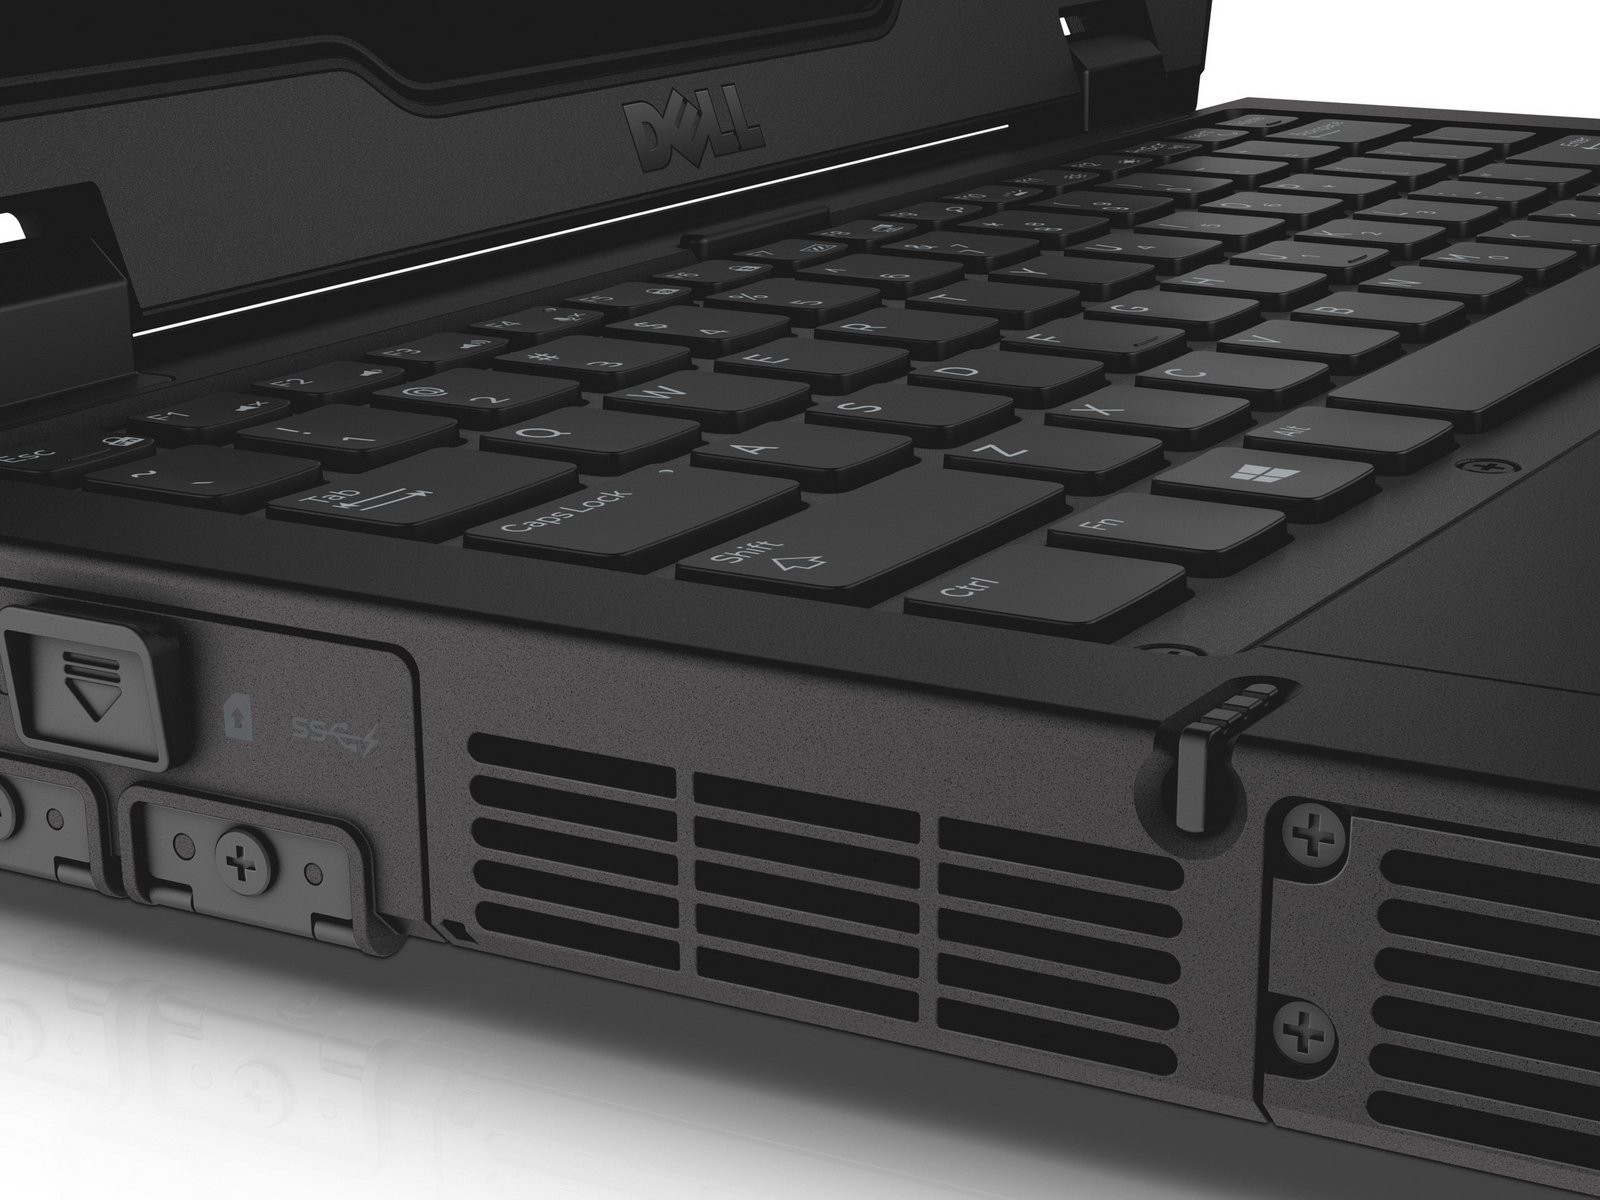 Dell Latitude 14 Rugged Extreme 7404 I5 Astringo